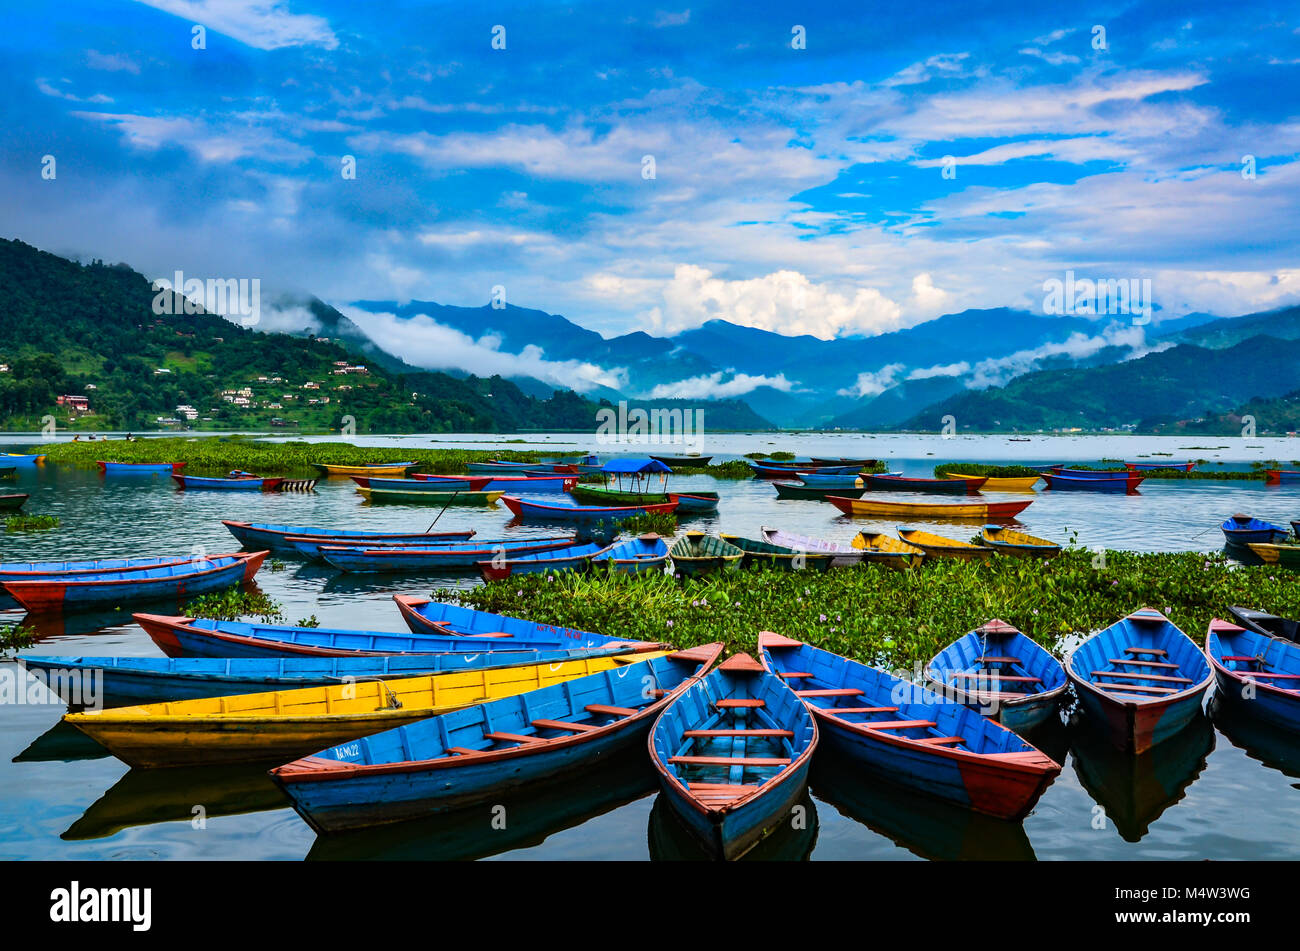 Colorful row boats docked on Lake Phewa in Pokhara, Nepal. - Stock Image